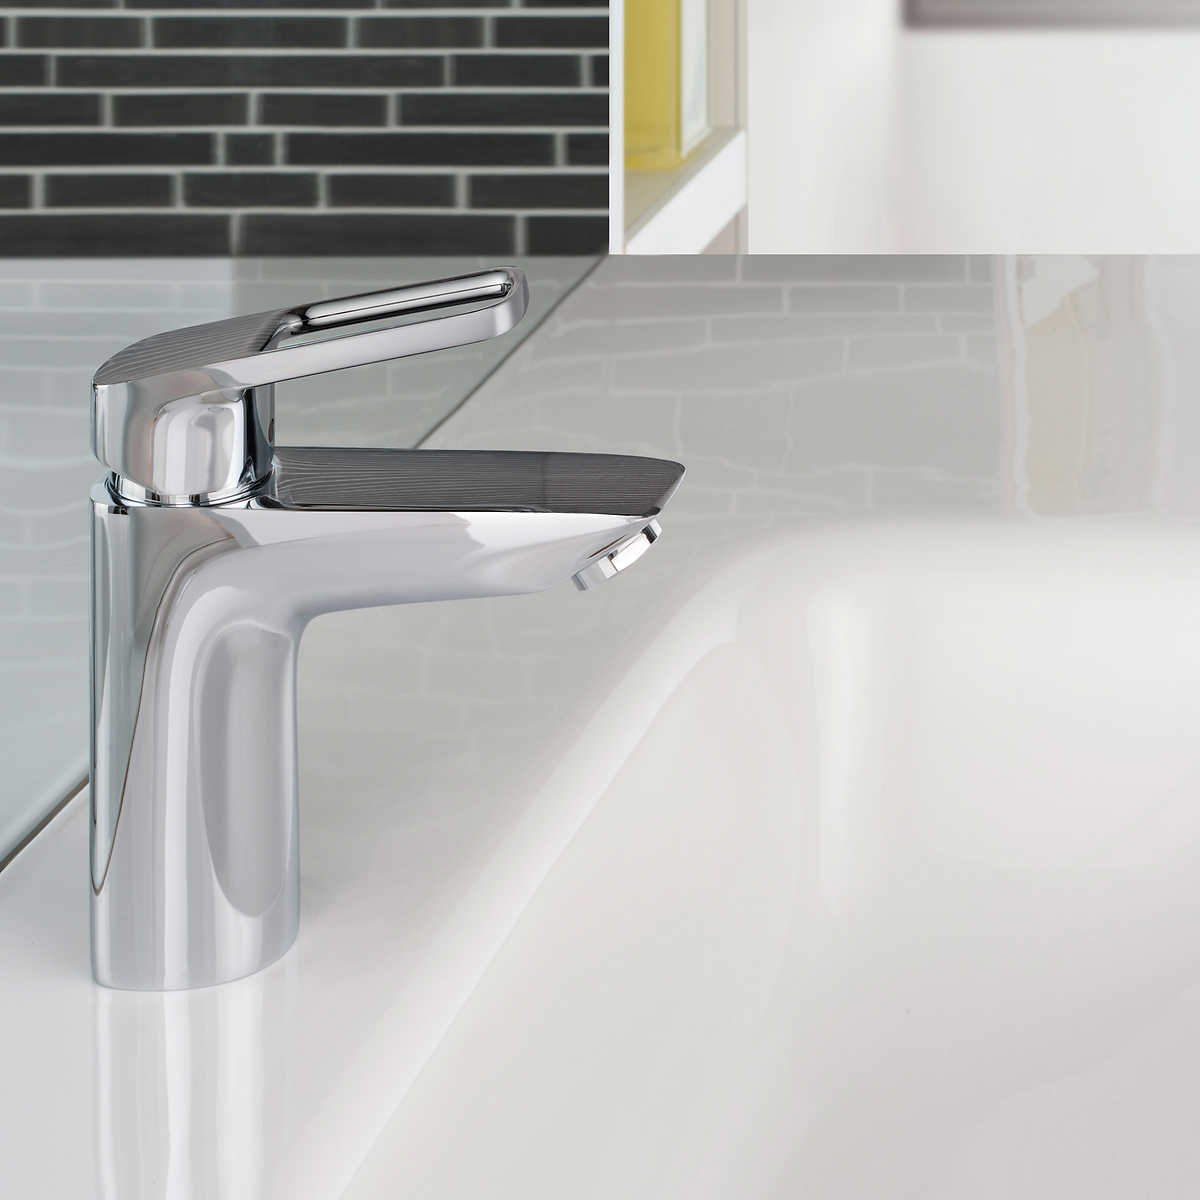 Hansgrohe logis loop single hole bathroom faucet shop fowarding Hansgrohe logis loop single hole bathroom faucet